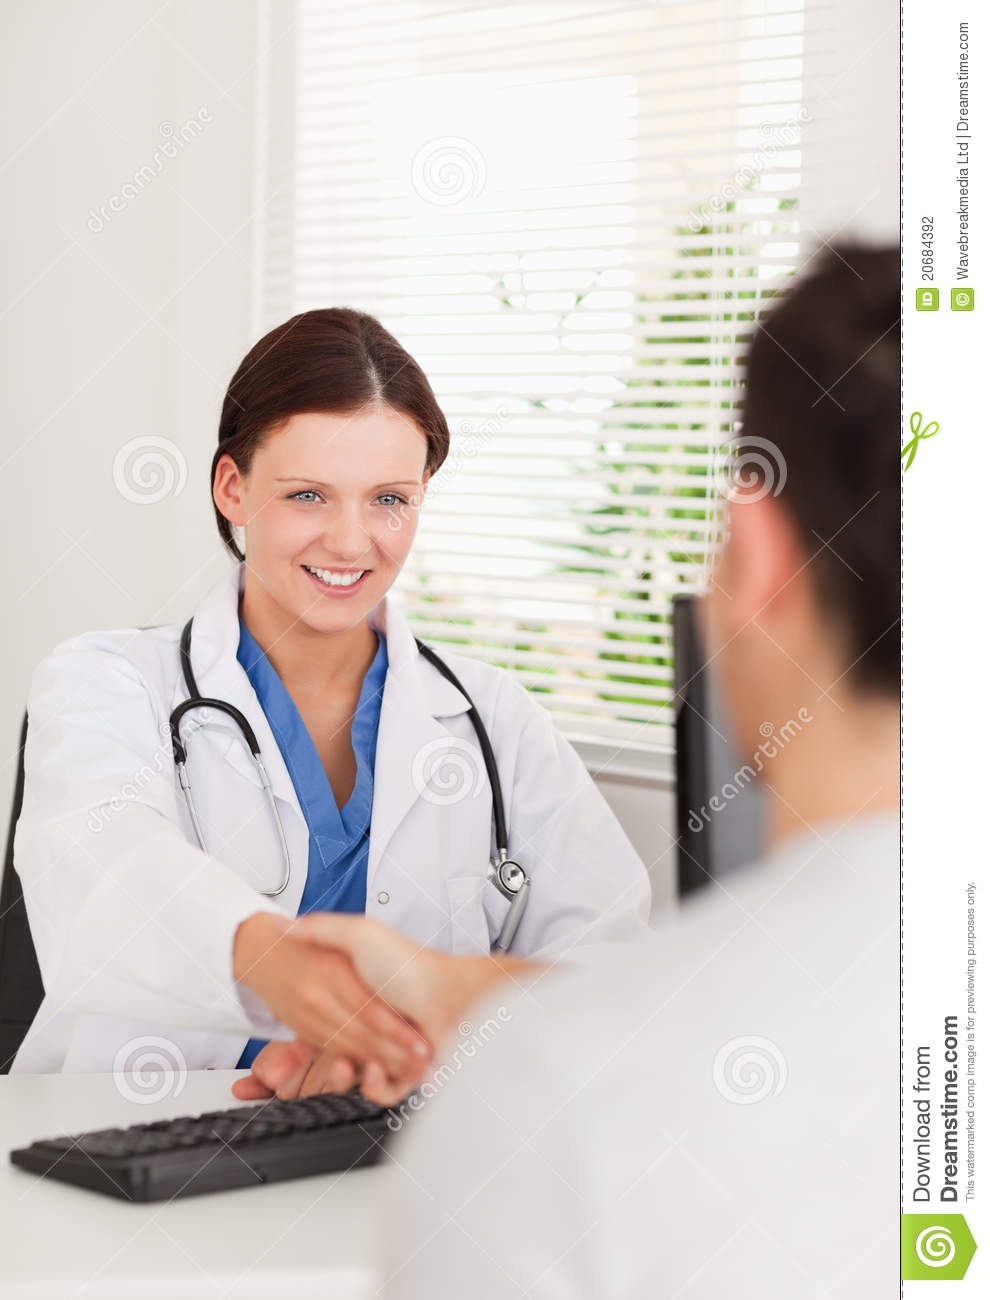 dating residency doctor Here's a brief overview of medical residency, who must complete it, and when learn about the different types of residencies and how to research them.